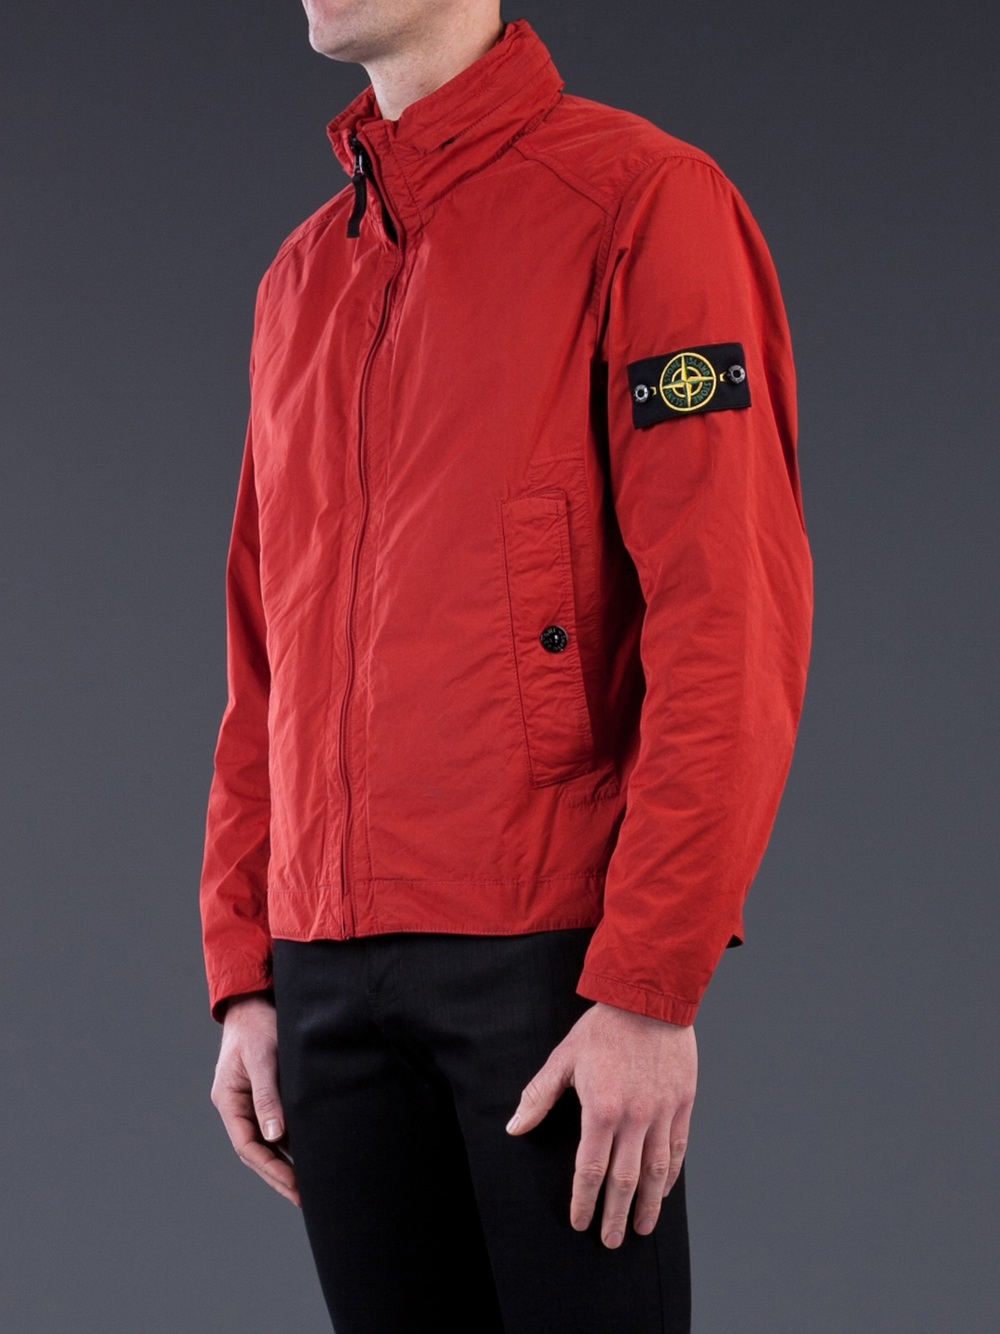 Stone Island Lightweight Jacket In Red For Men